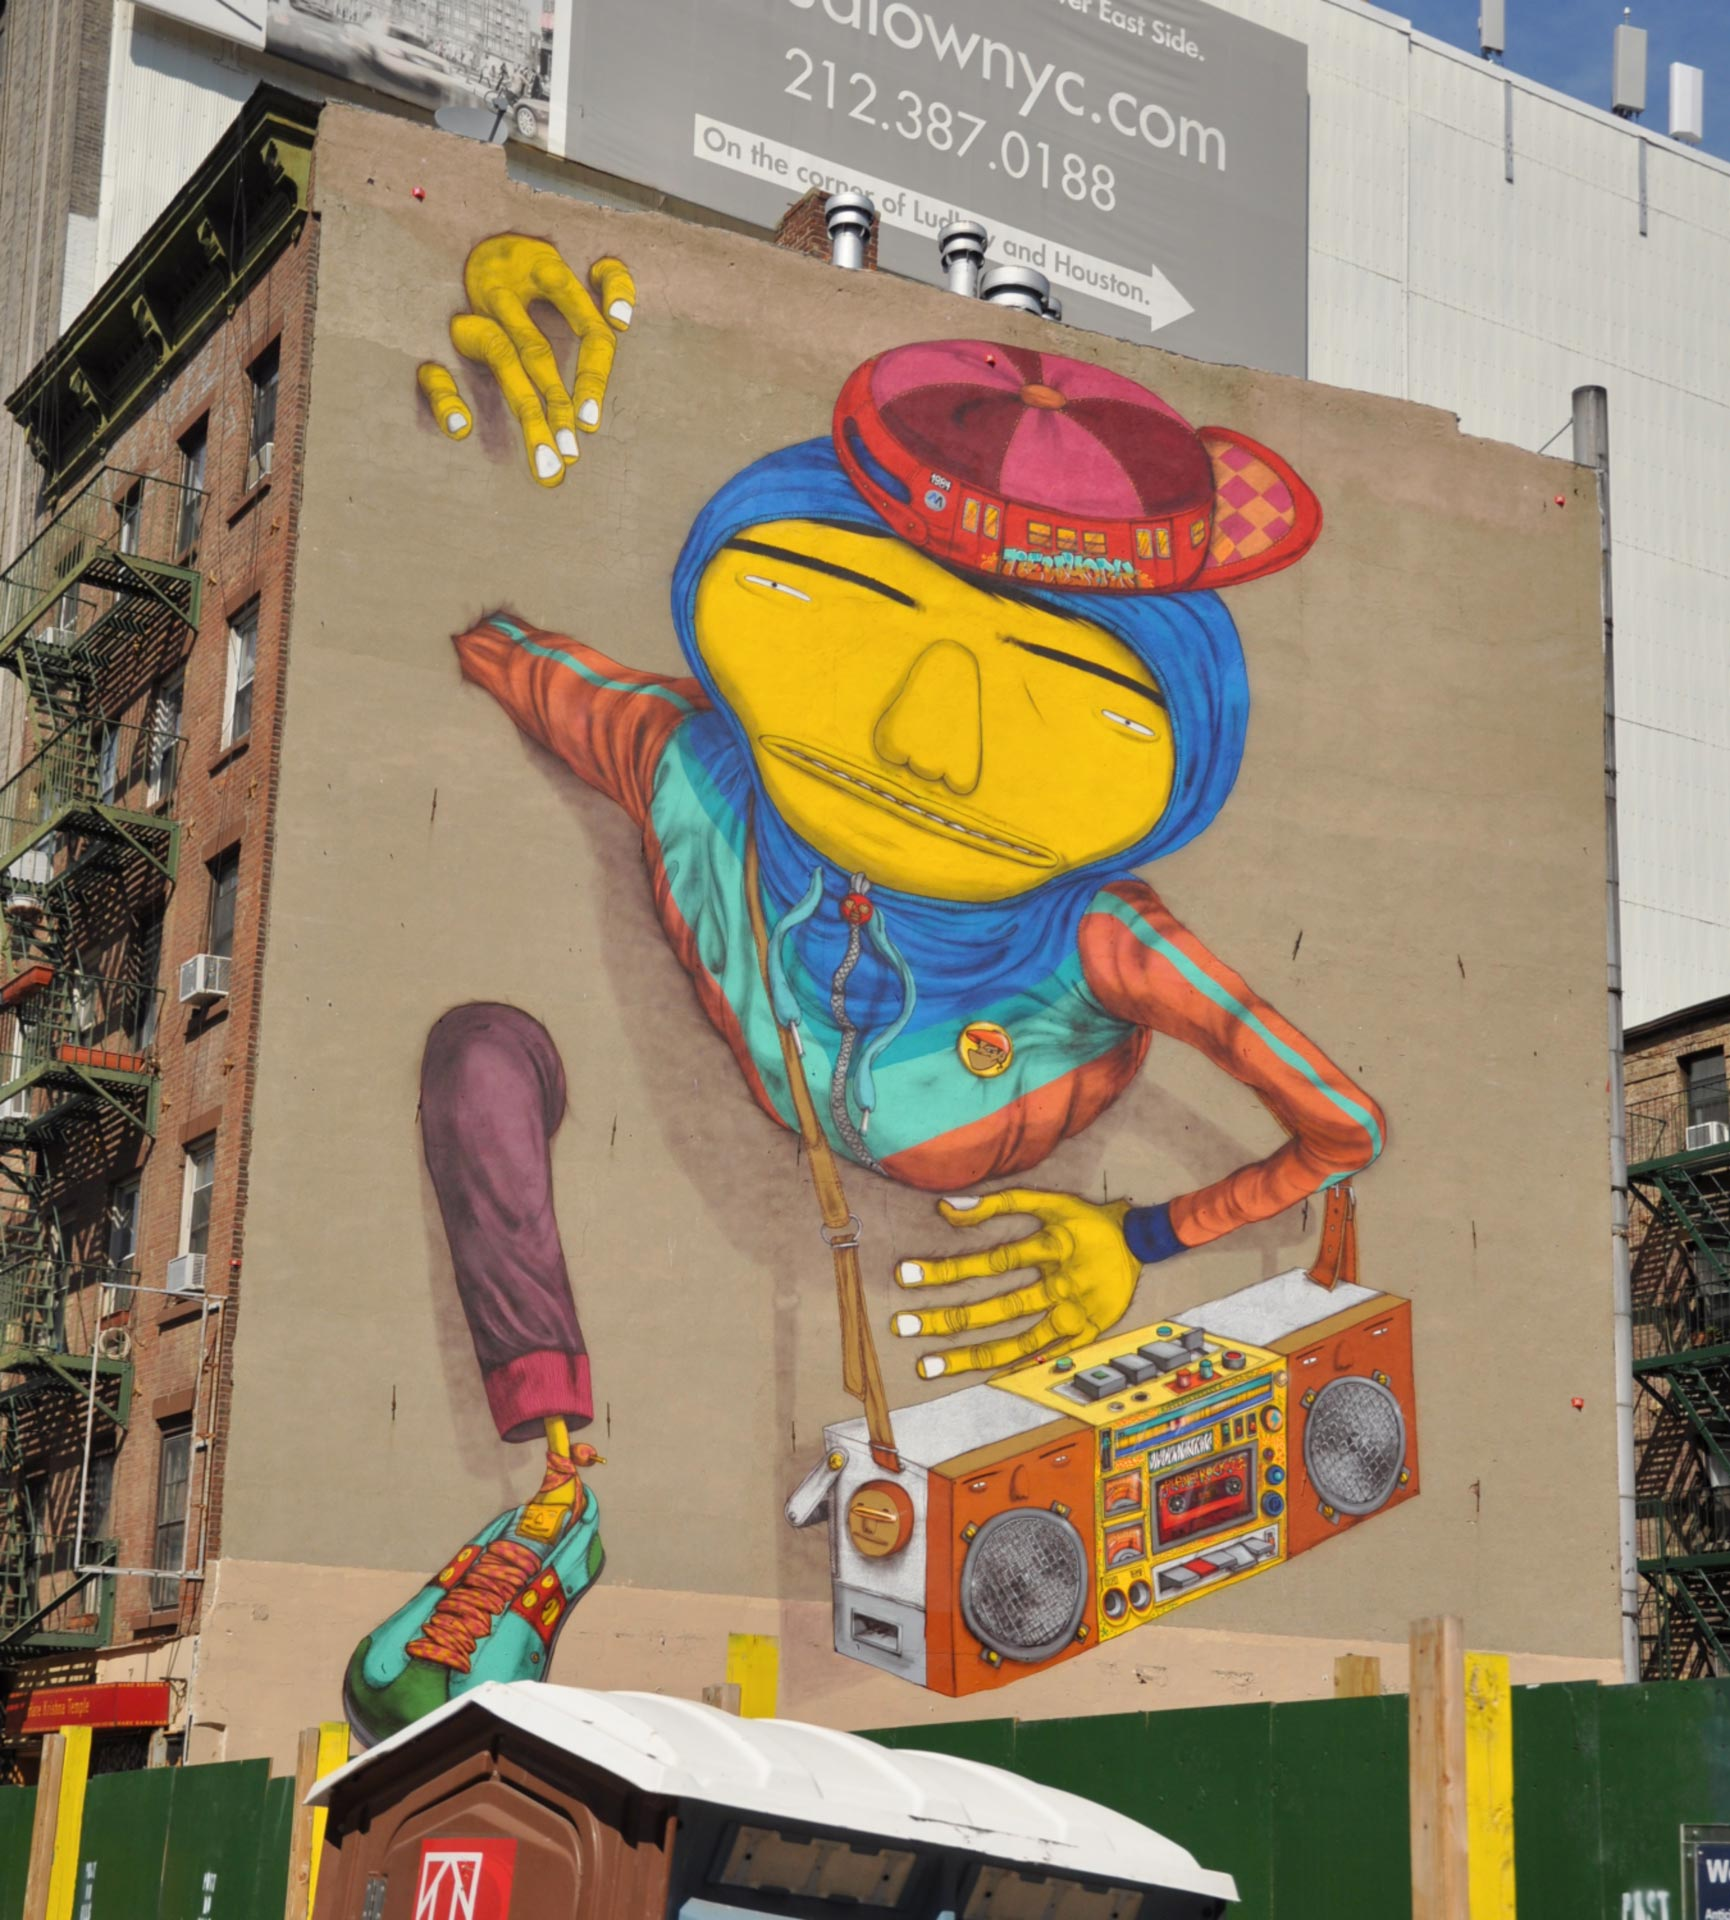 NYC-Graffiti-Os-Gemeos